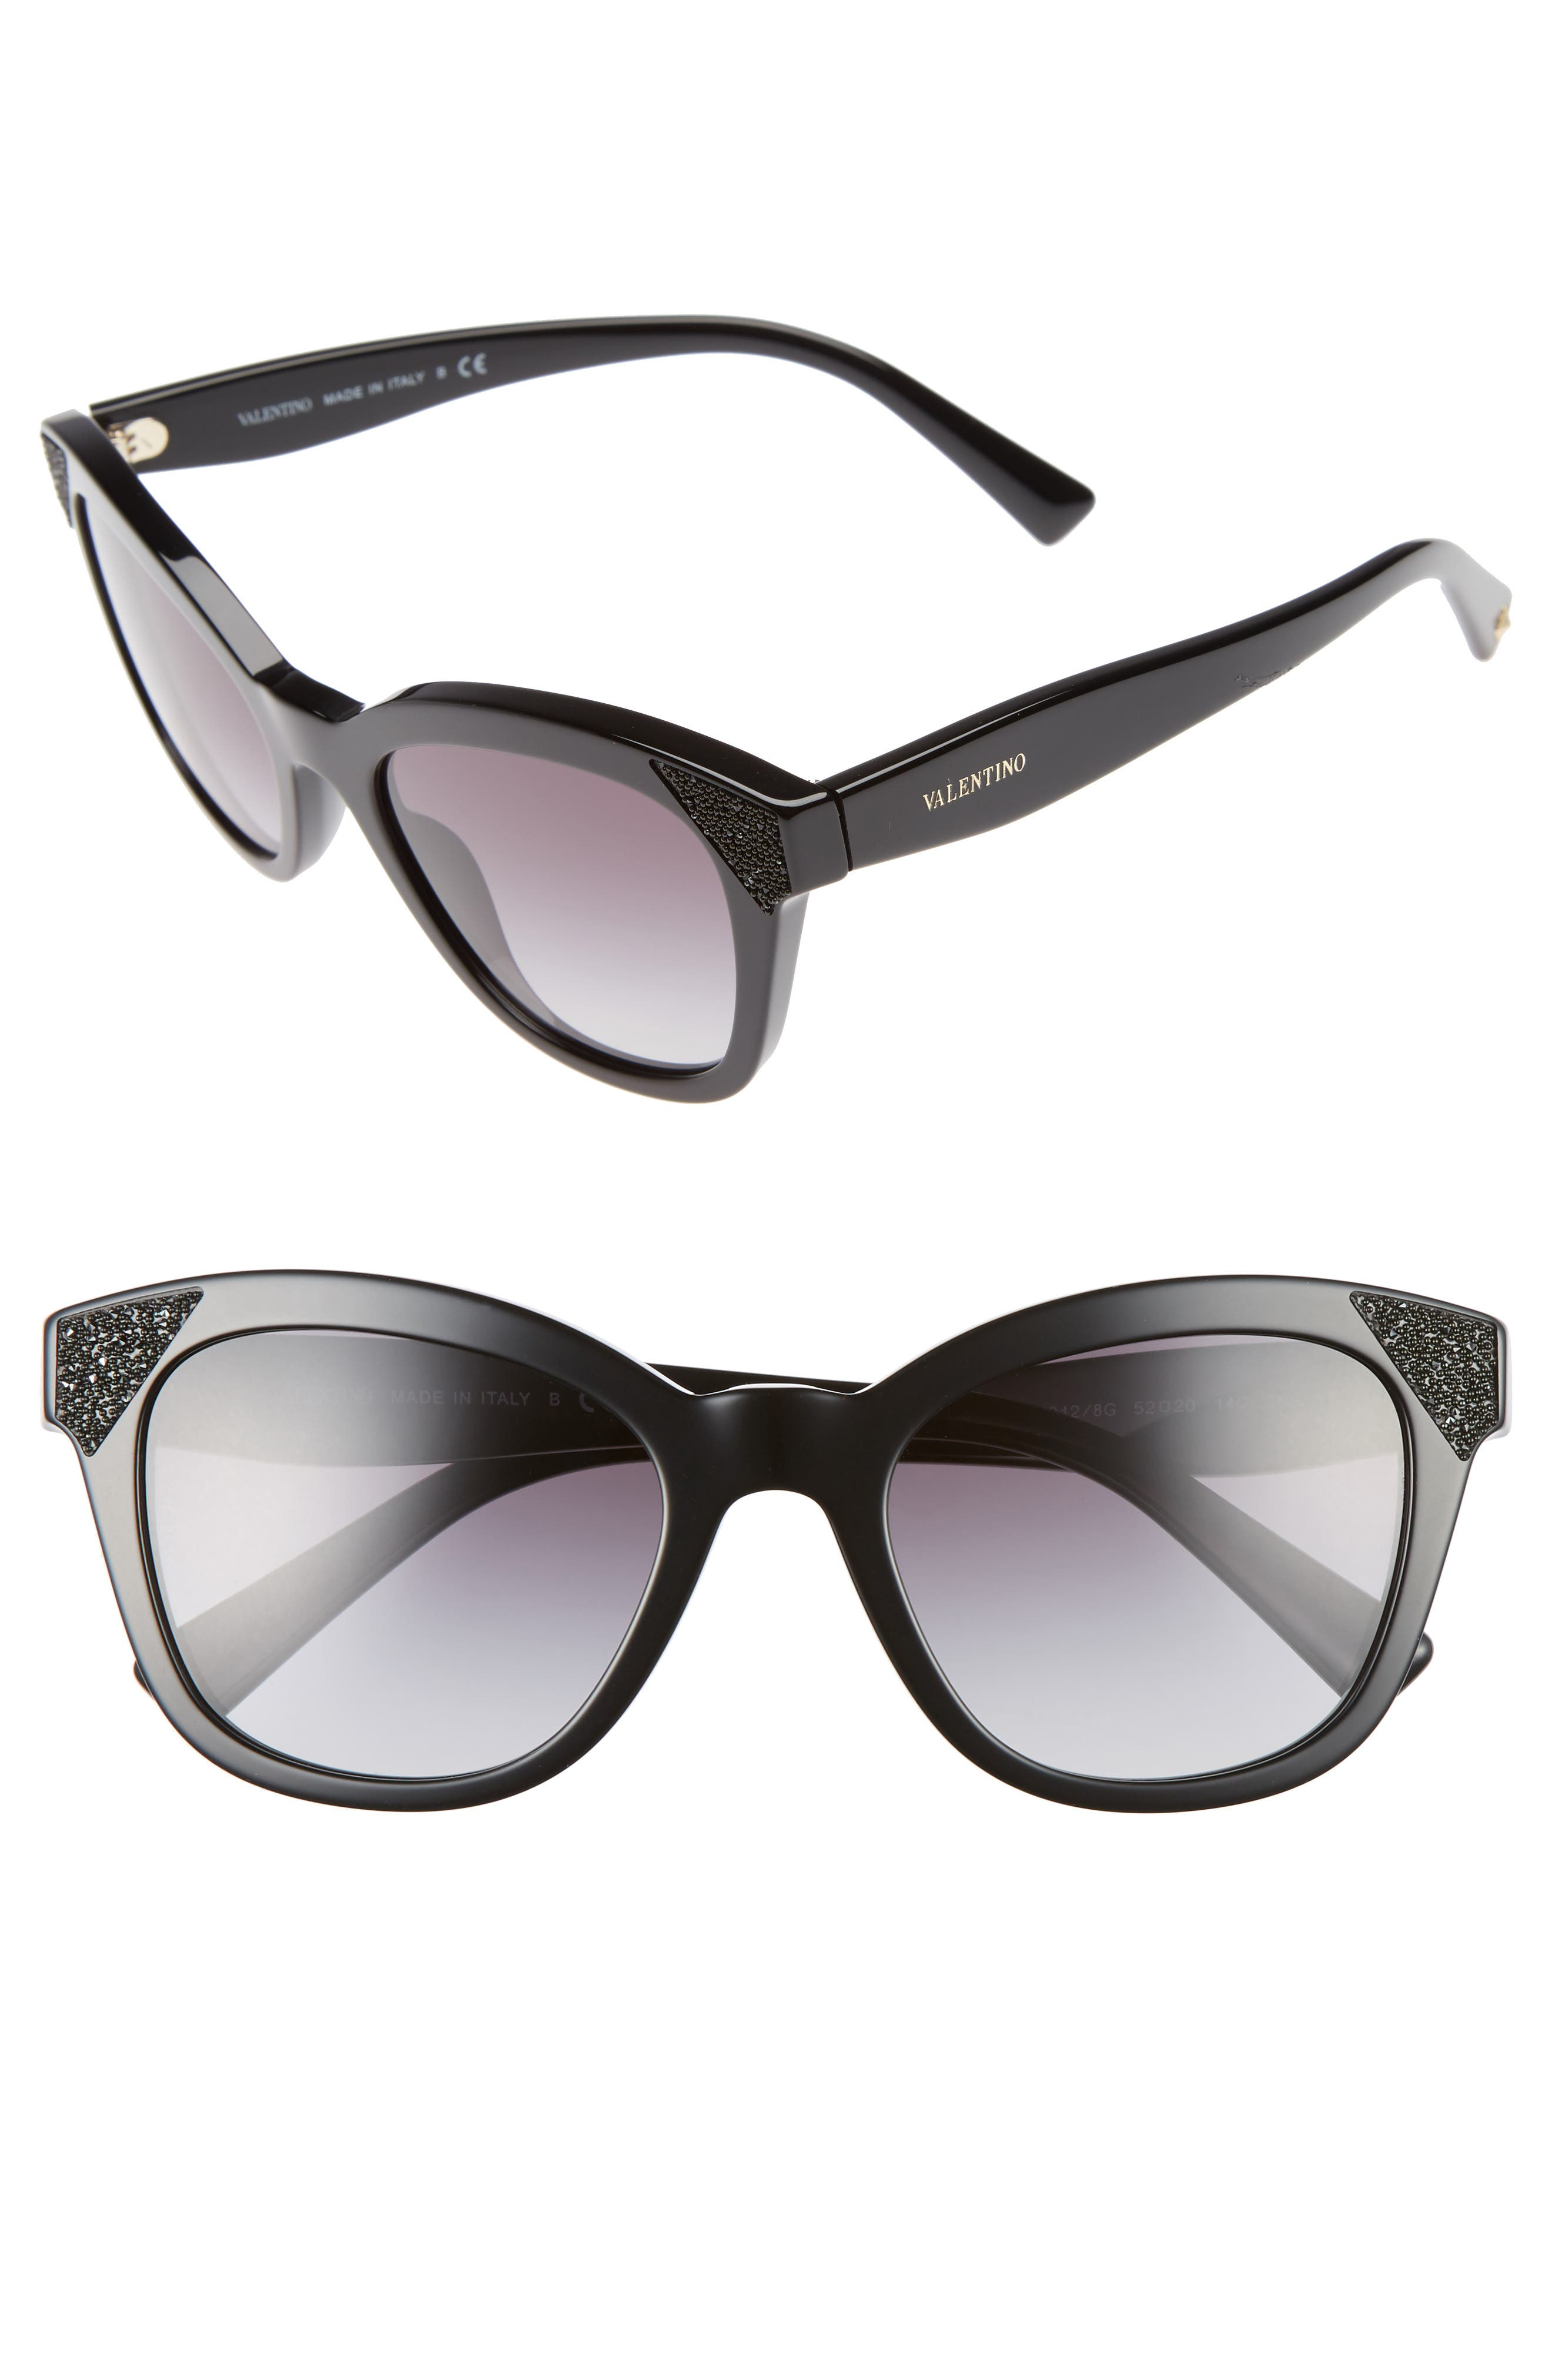 52mm Cat Eye Sunglasses,                             Main thumbnail 1, color,                             BLACK/ BLACK CRYSTAL